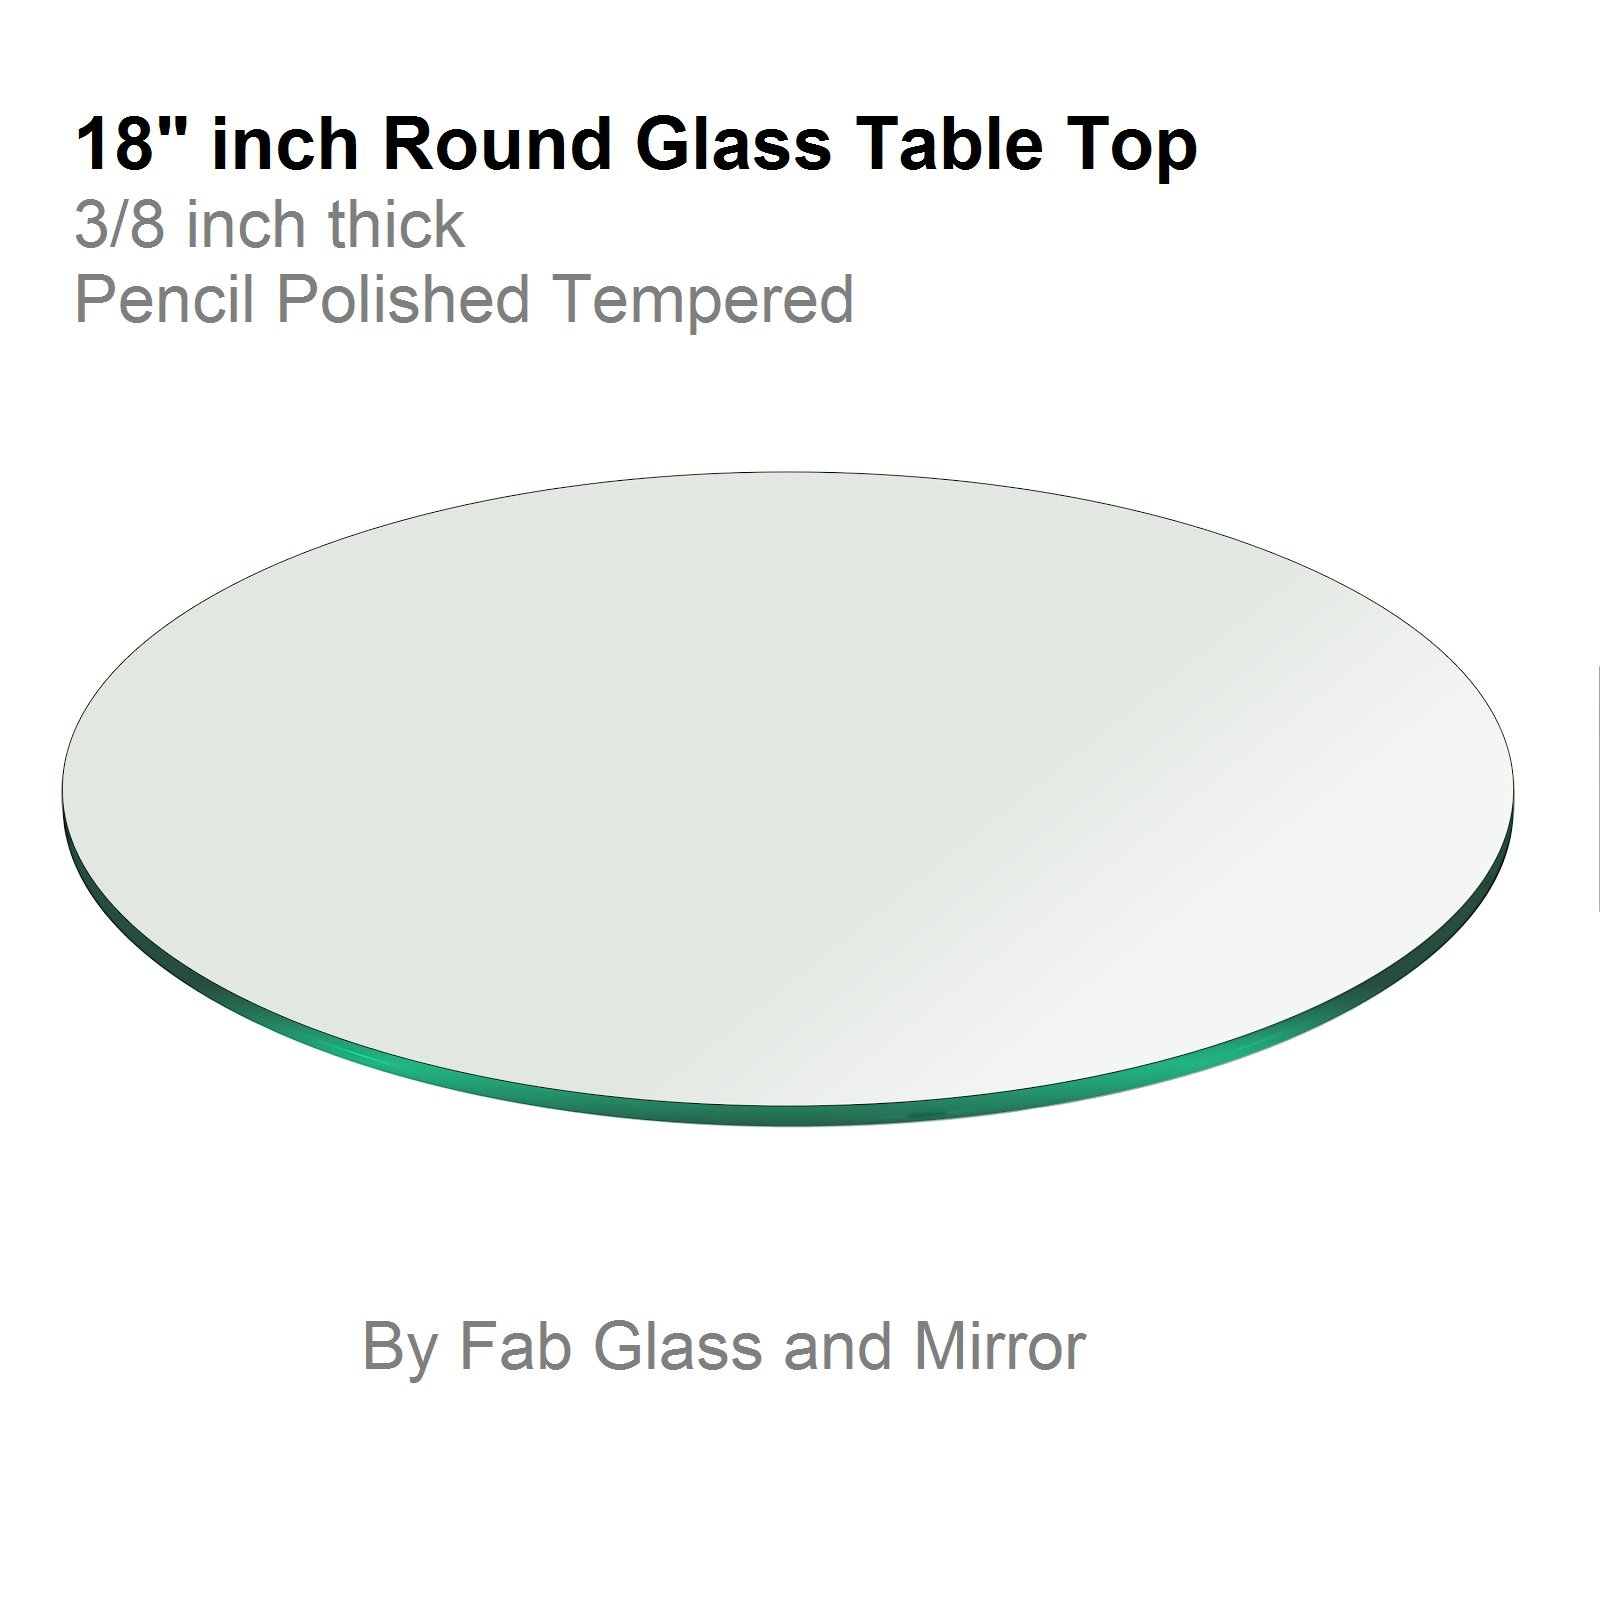 18'' Inch Round Glass Table Top 3/8'' Thick Pencil Polish Edge Tempered by Fab Glass and Mirror